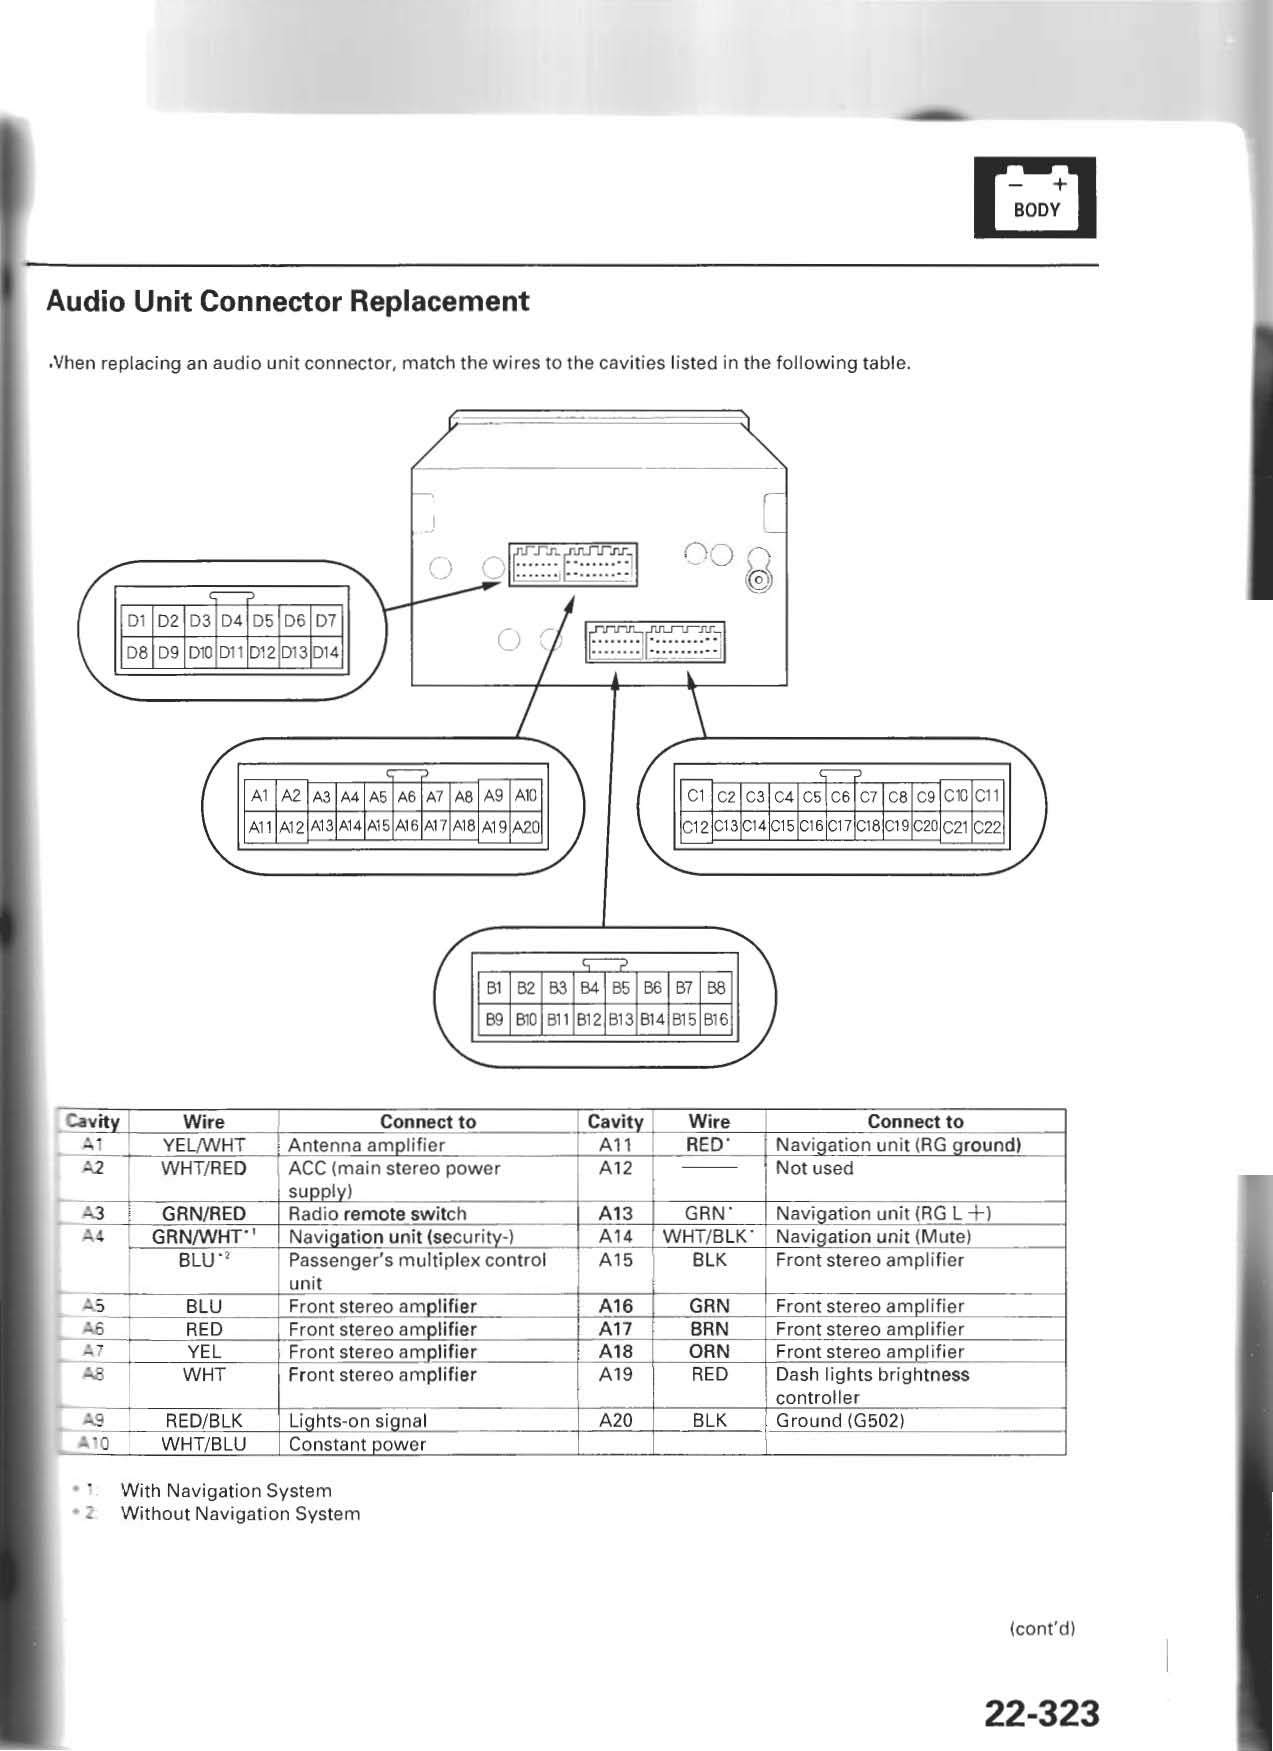 2000 acura el fuse box diagram acura el 2005 wiring diagram | wiring library